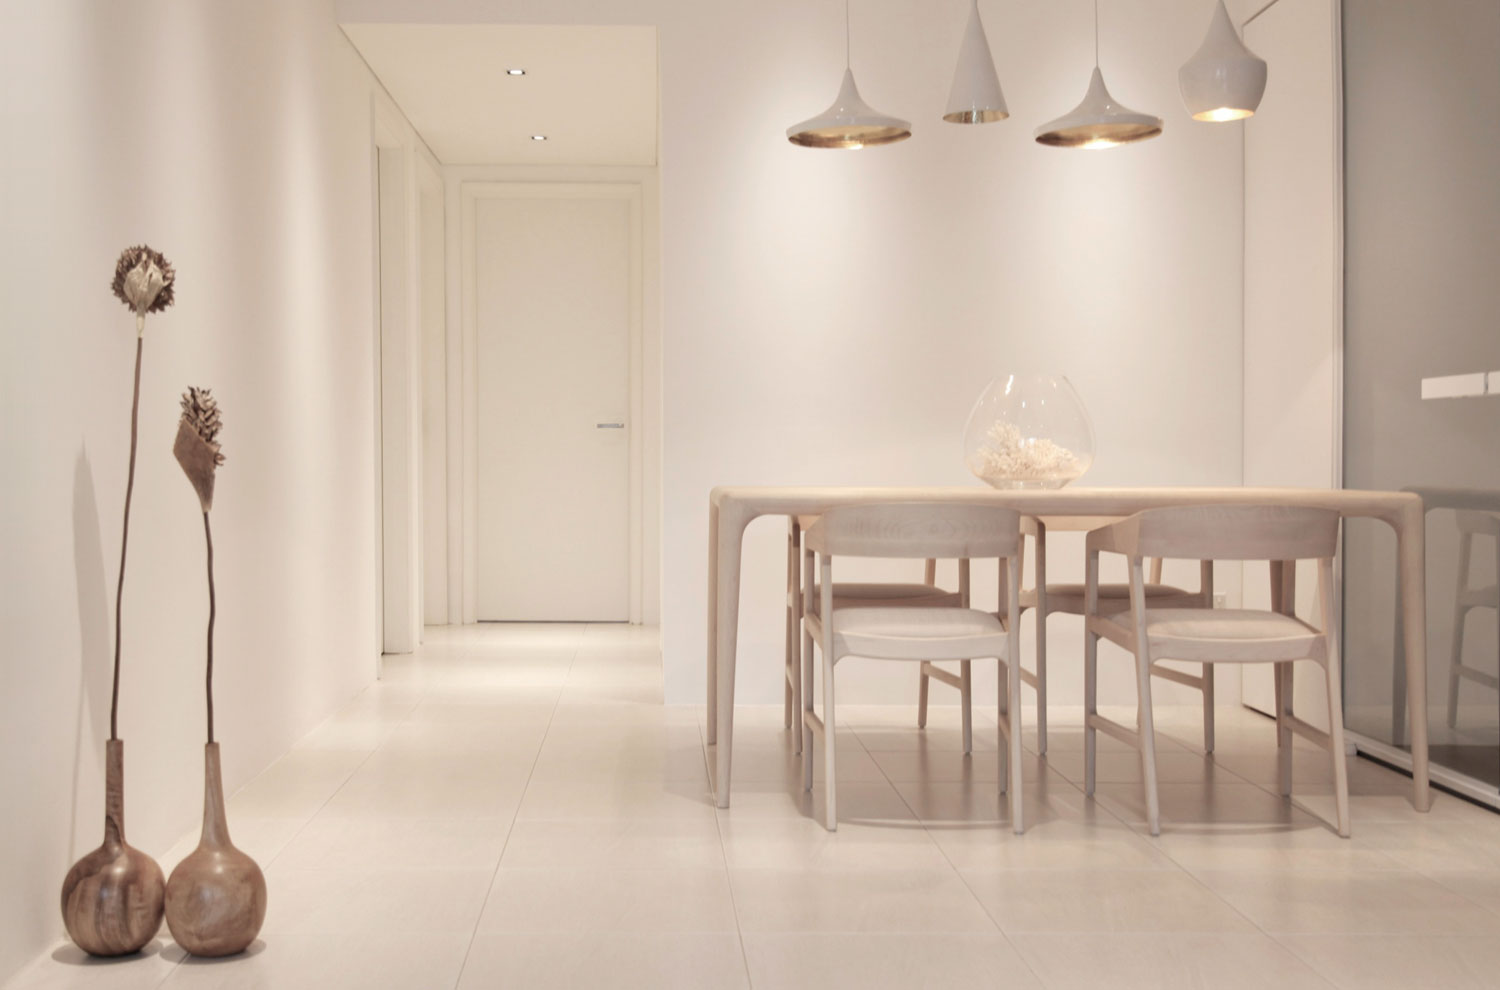 D Apartment, Singapore by 0932 | Yelowtrace